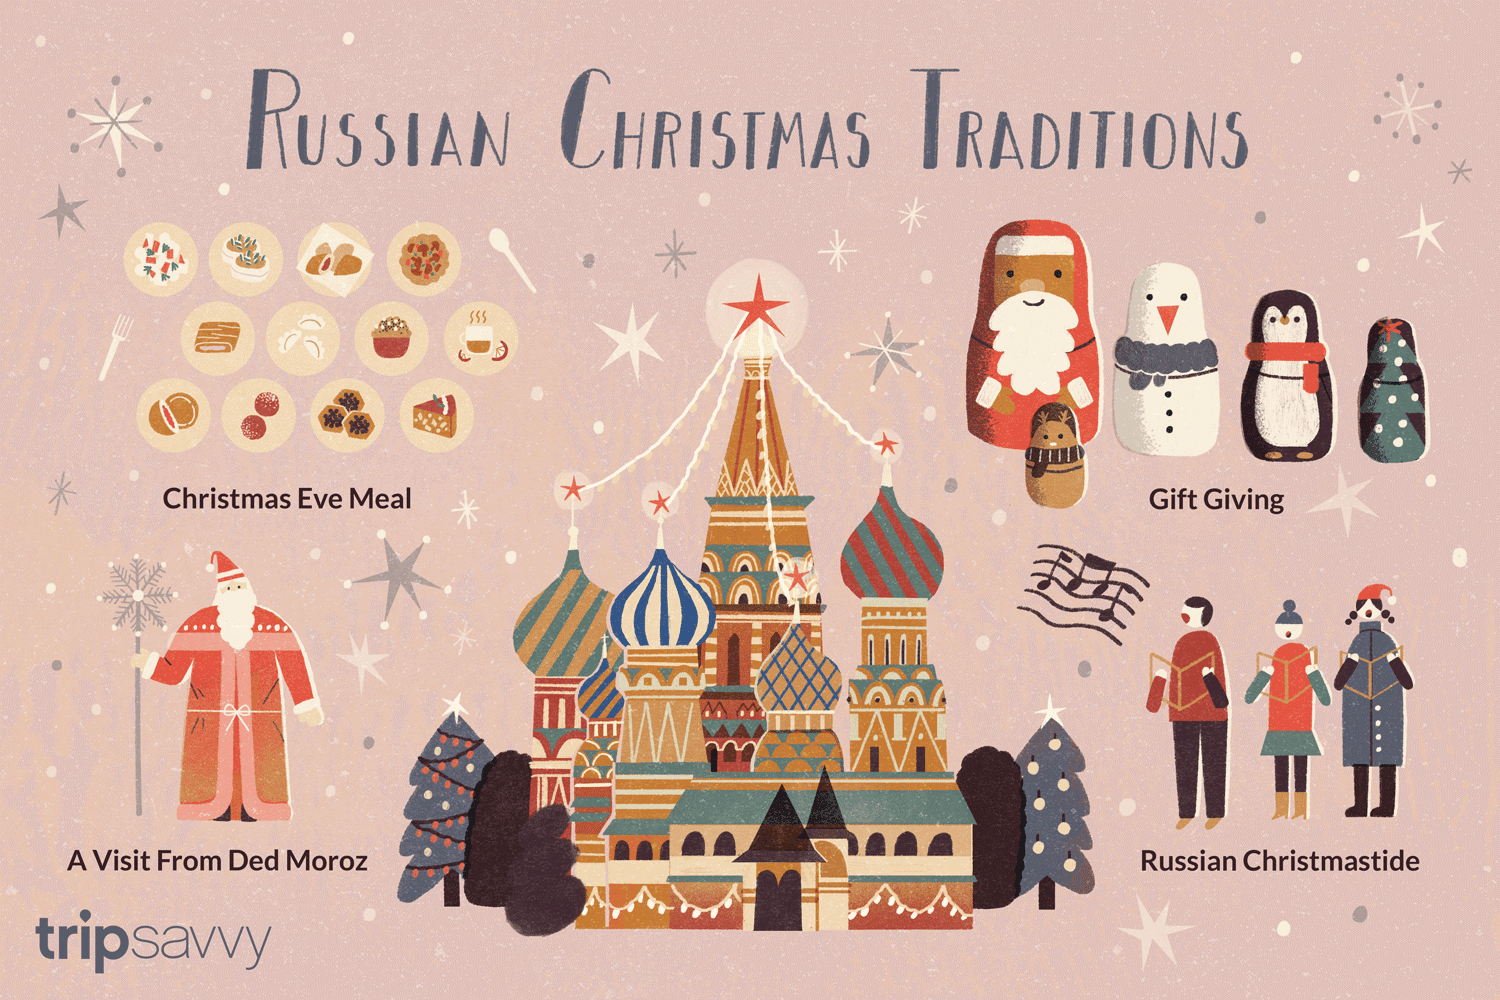 Russian Christmas.Christmas Traditions In Russia